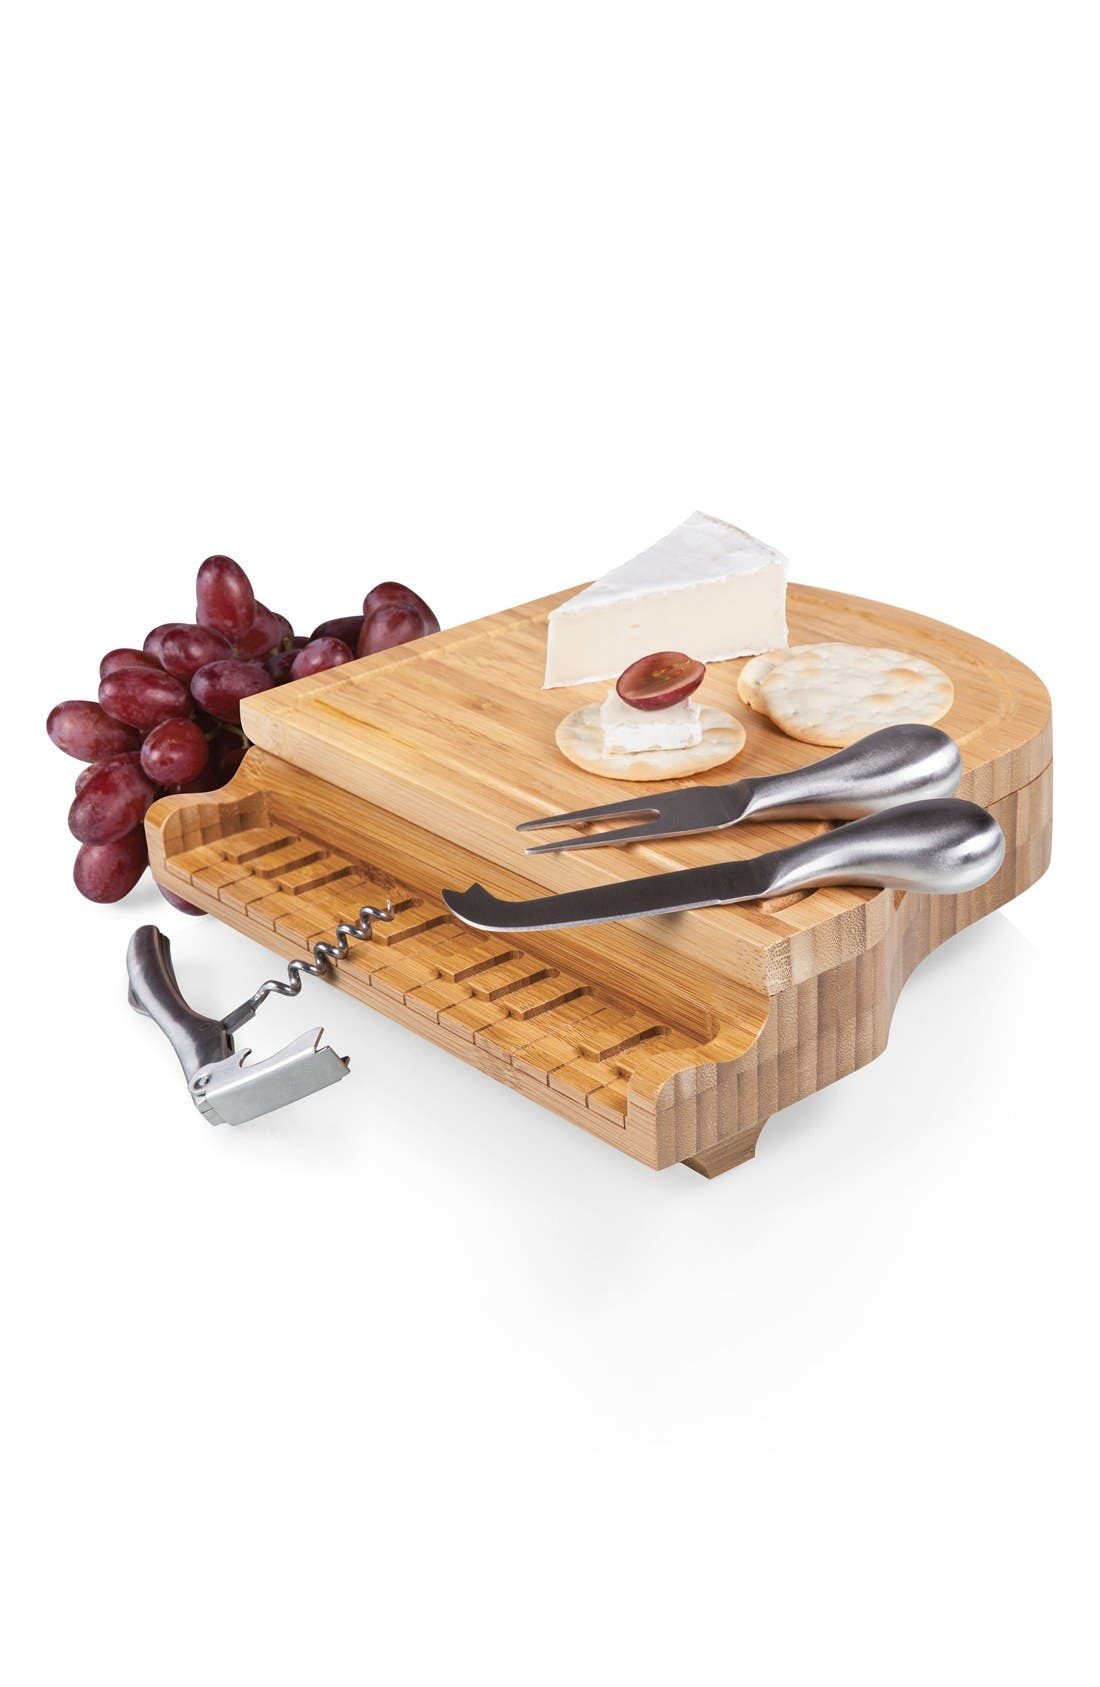 'Piano' Cheese Board Set,                             Alternate thumbnail 4, color,                             Brown